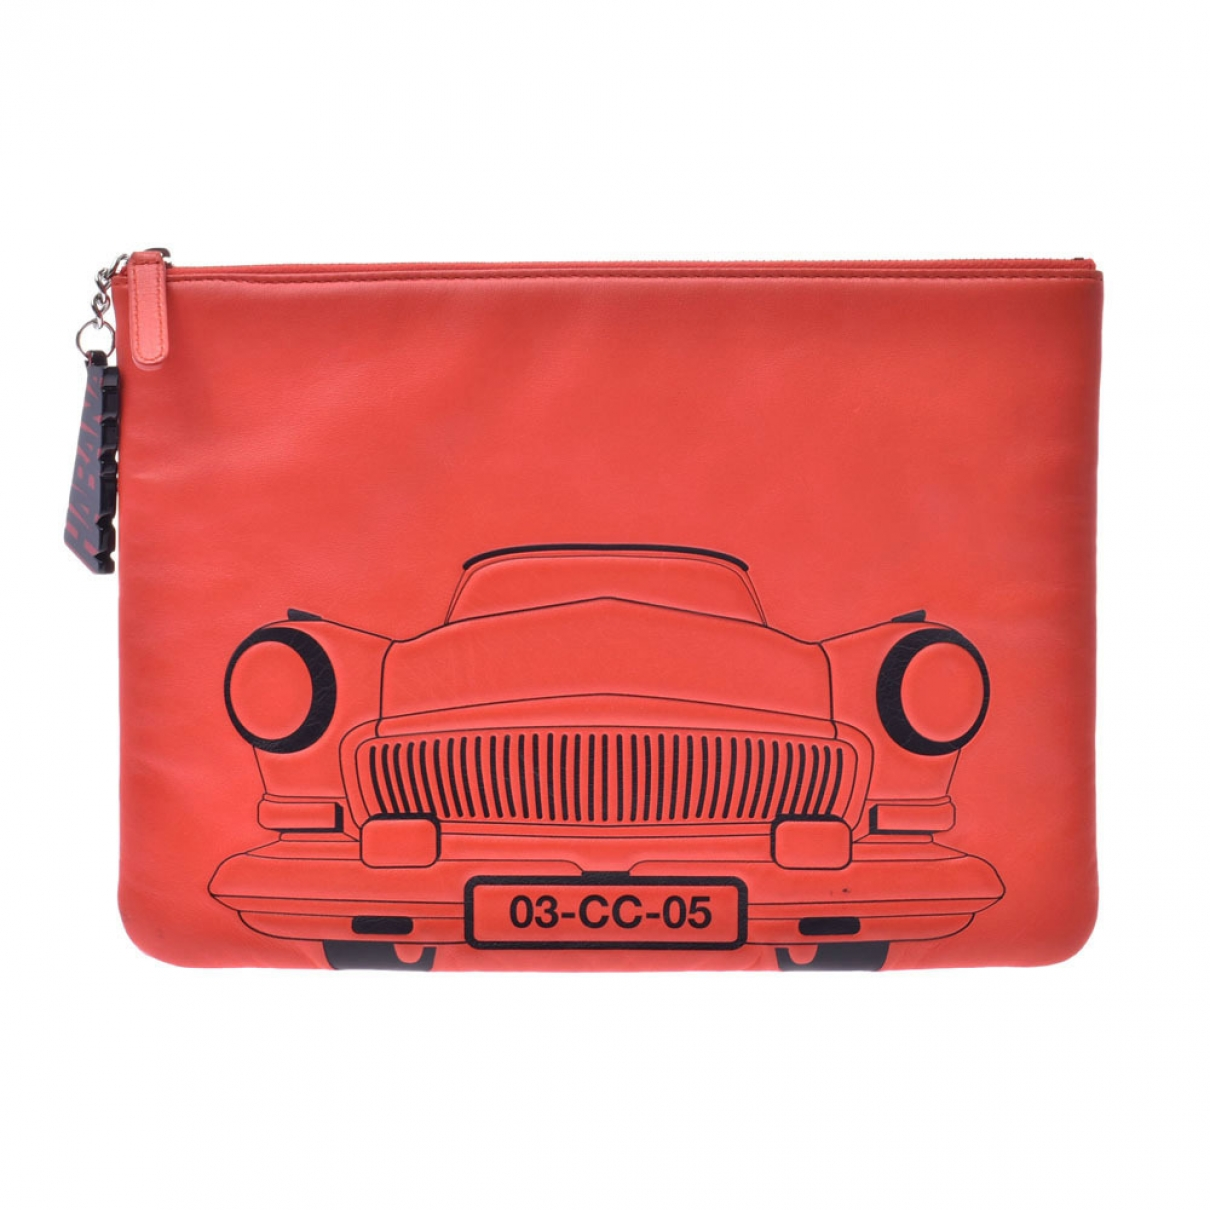 Chanel \N Red Leather Clutch bag for Women \N